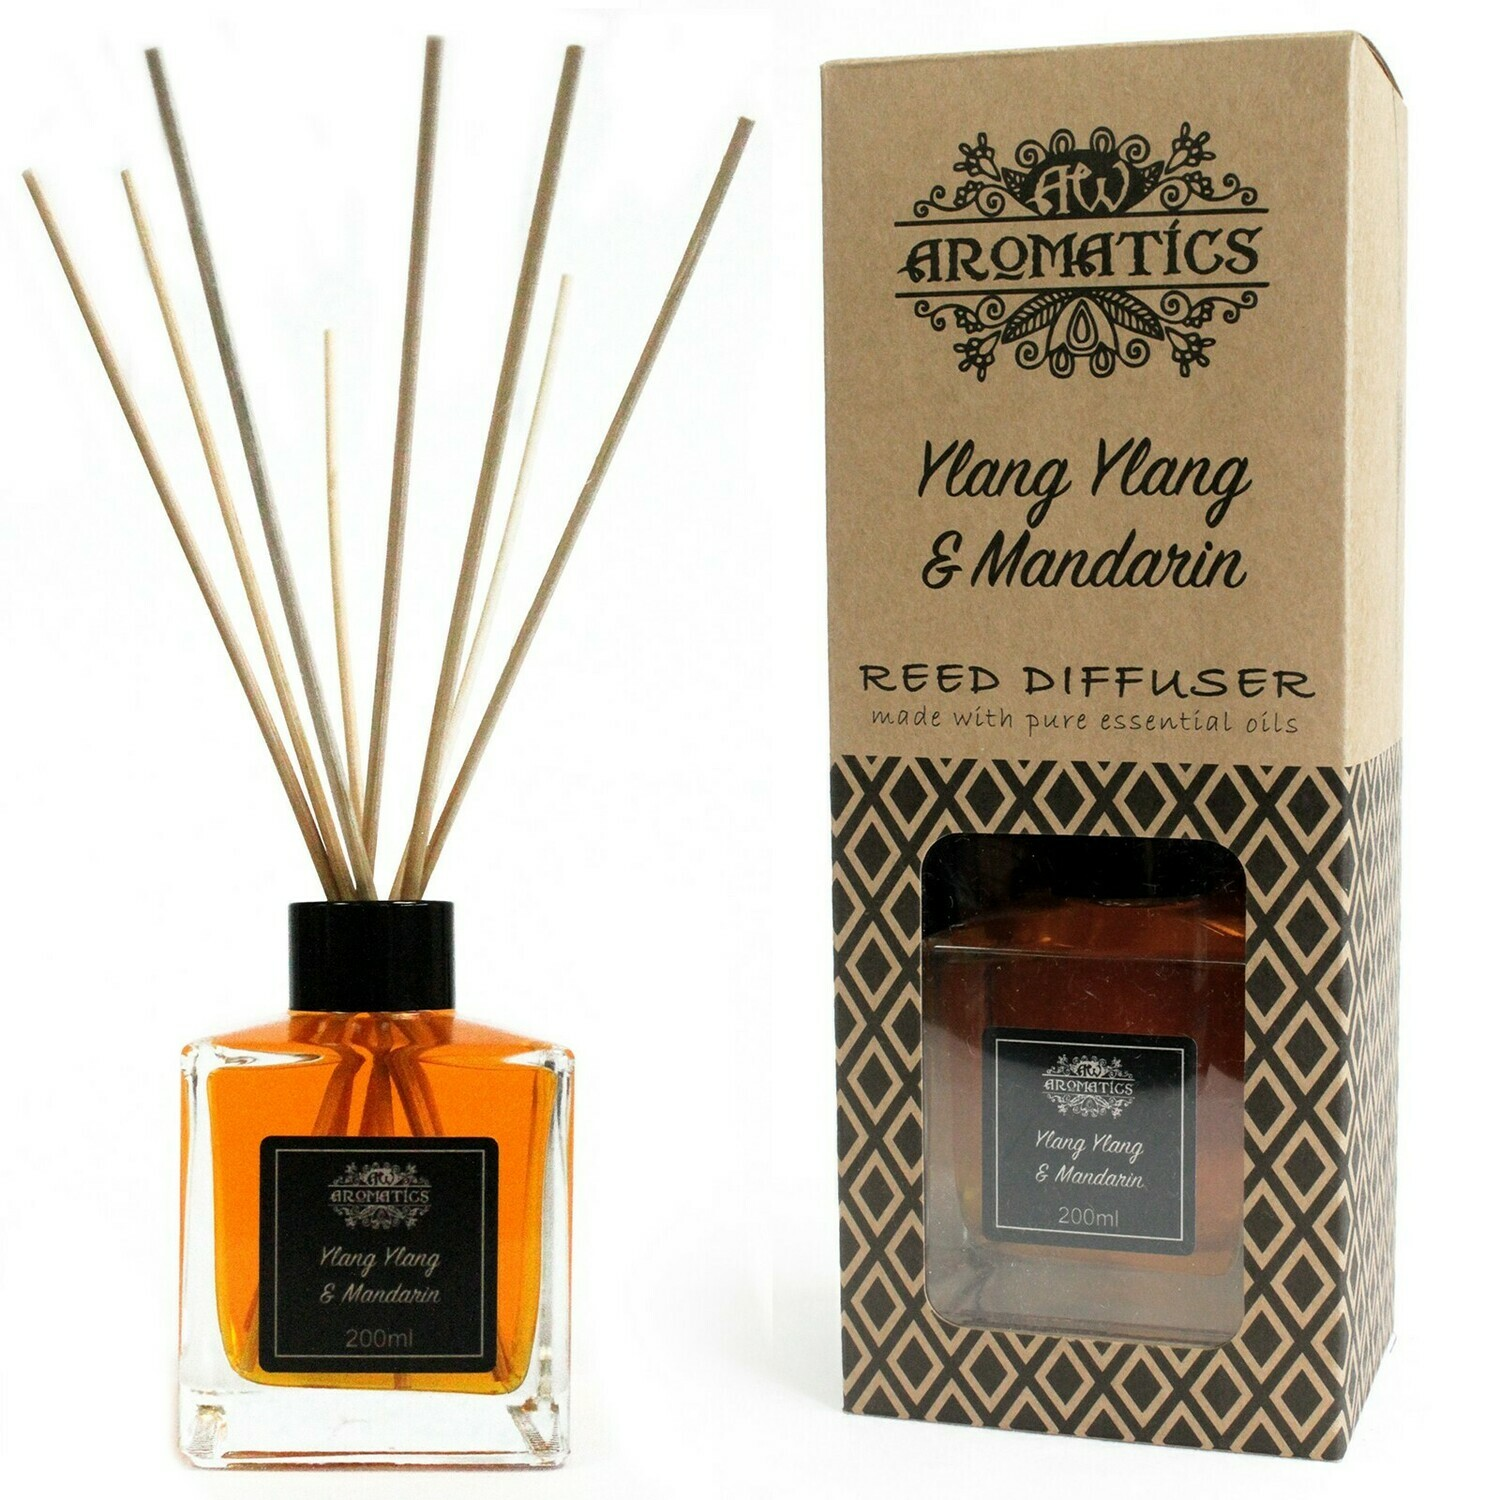 Ylang Ylang & Mandarin Essential Oil Reed Diffuser 200 ml